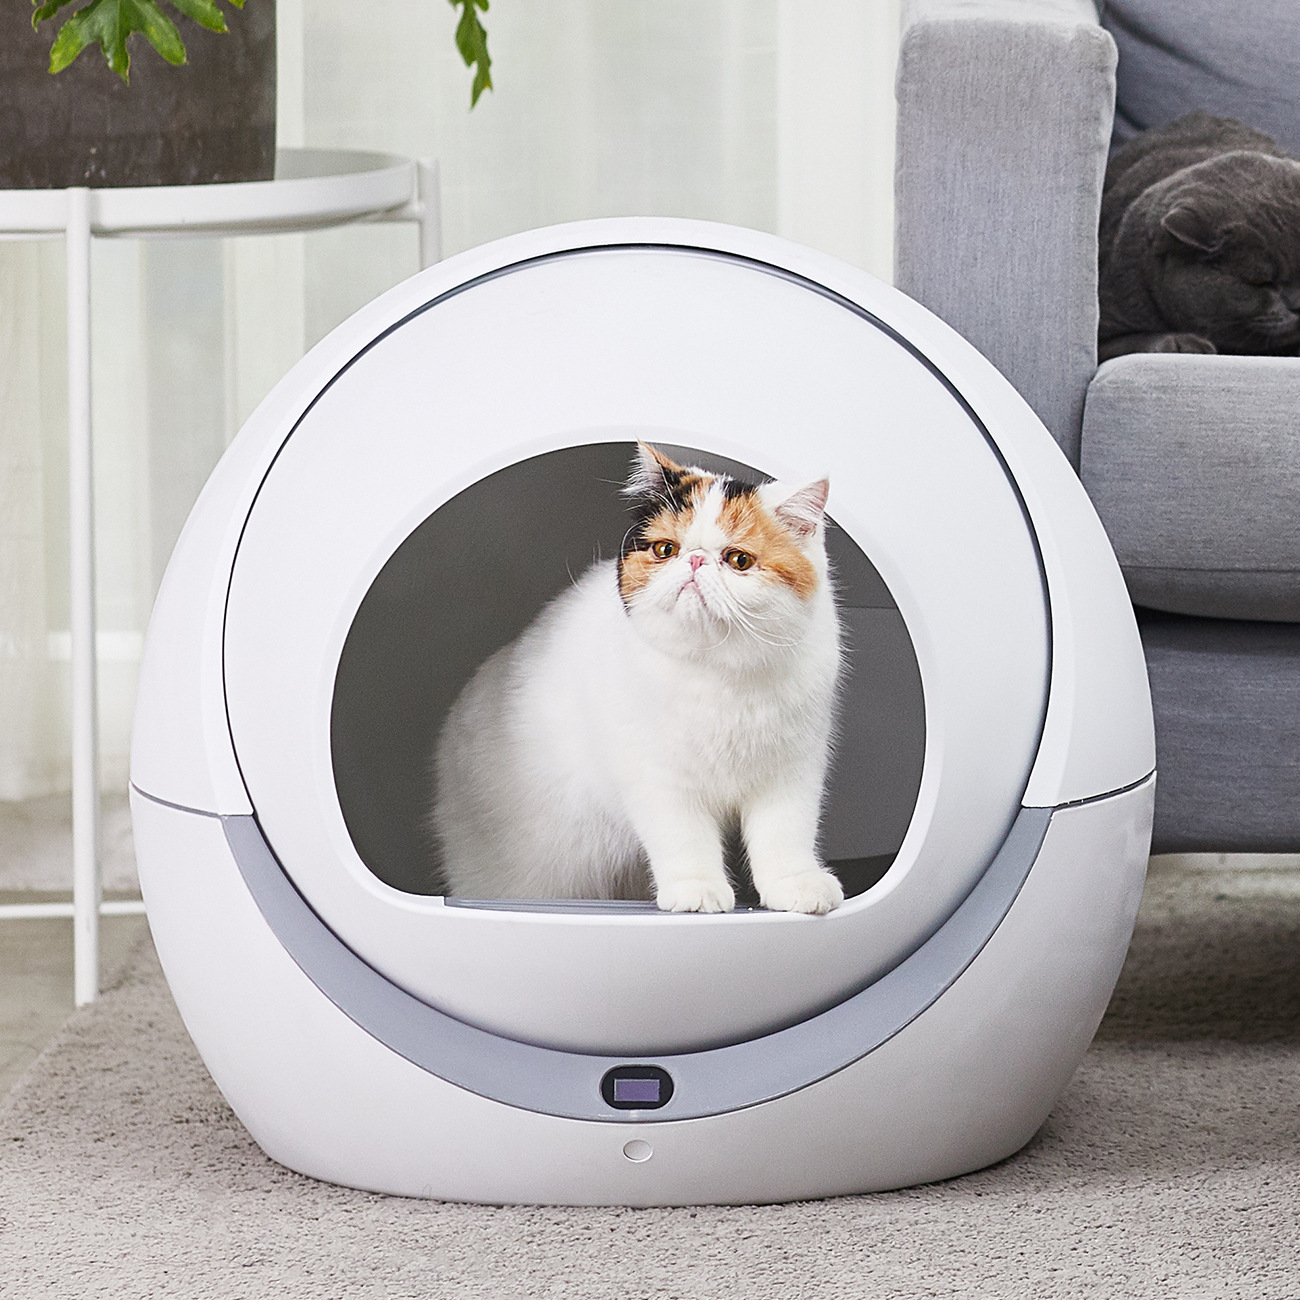 Automatic cat toilet automatic cat sandbox induction rotary cleaning cat robot litter large kitty self cleaning litter box